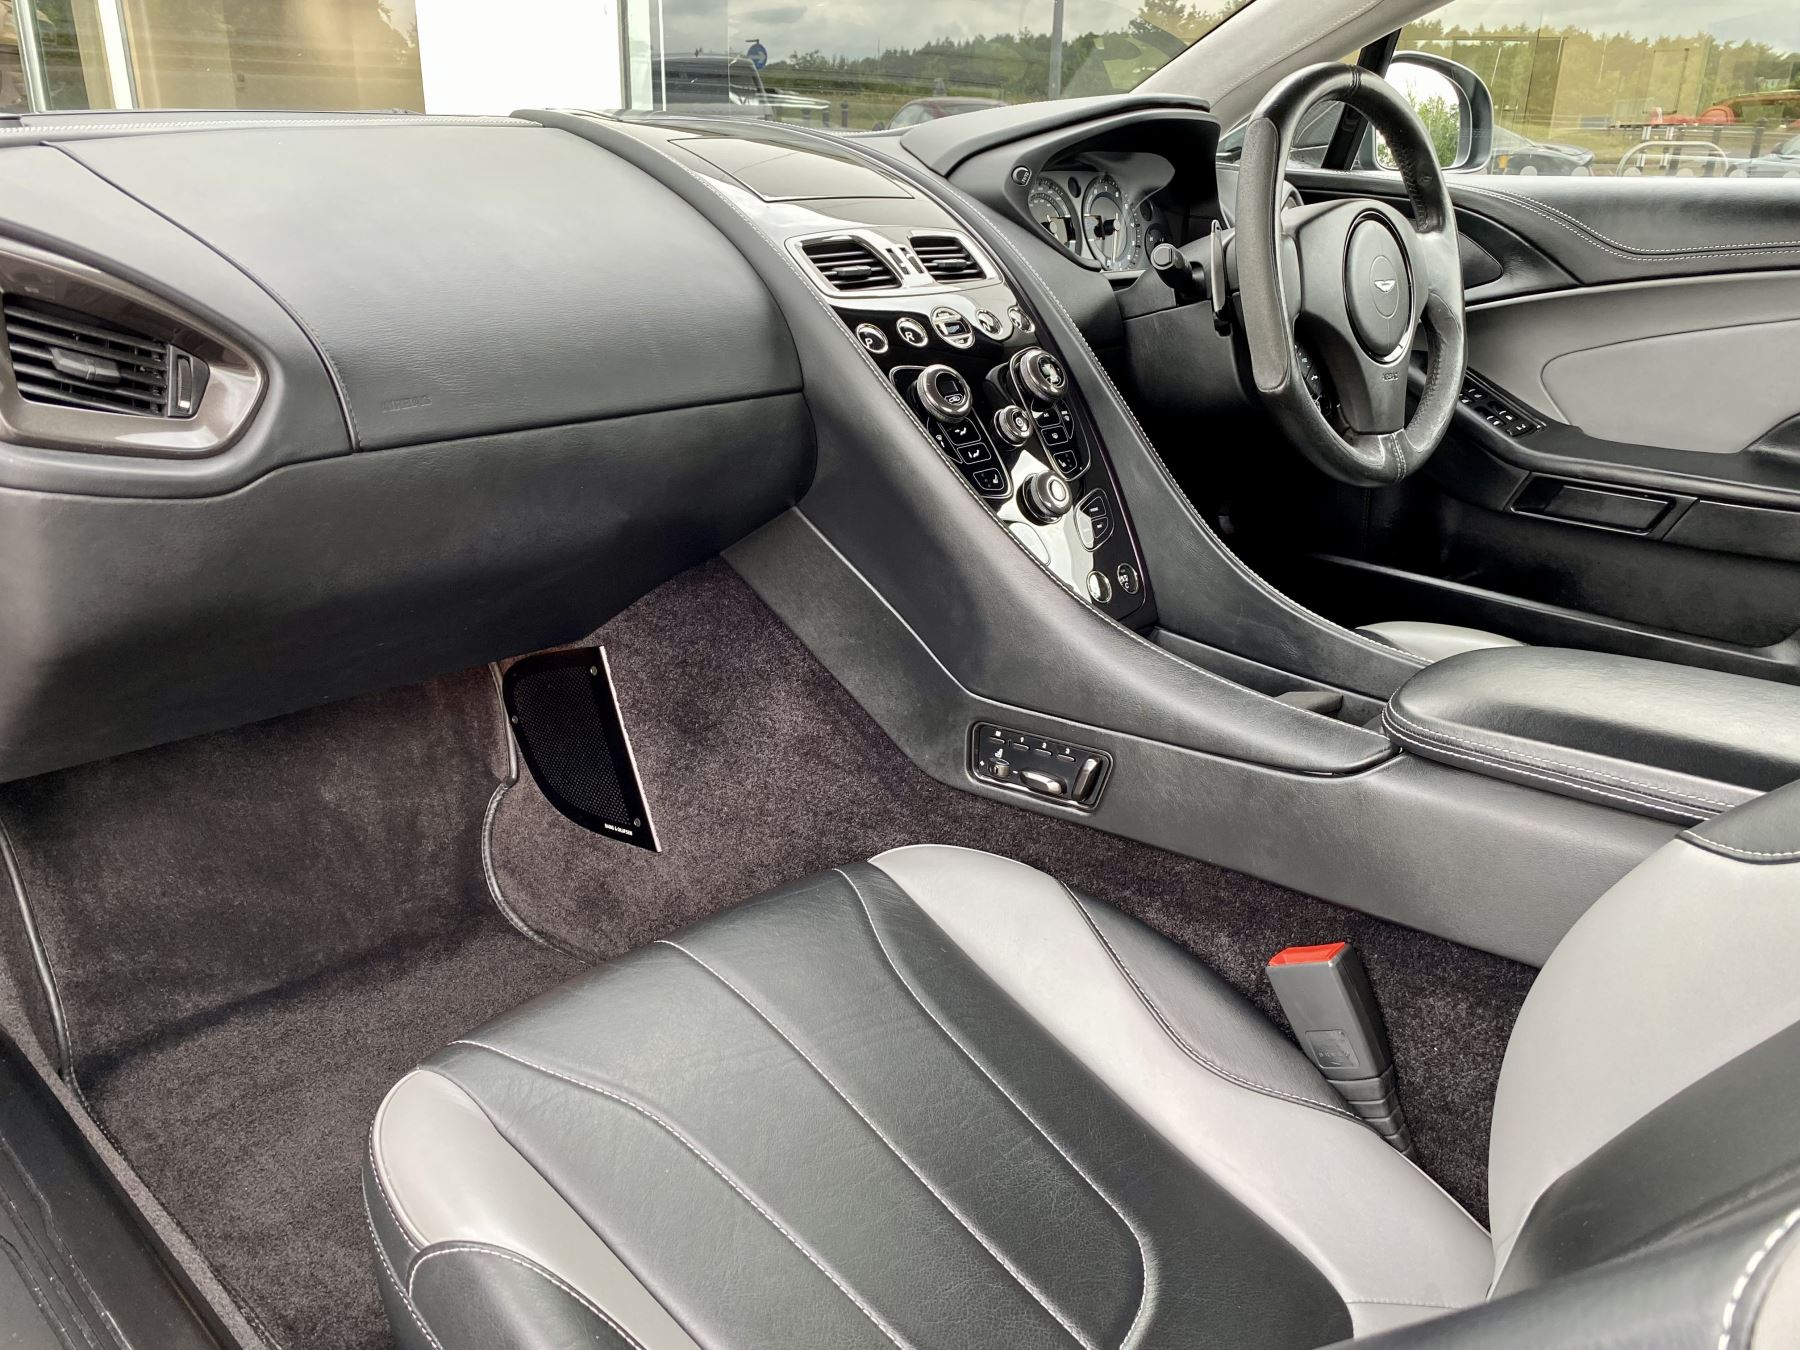 Aston Martin Vanquish V12 [568] 2+2 2dr Touchtronic 3 8 Speed, 2 Owners From New, Onyx Black, Bang And Olufsen. image 22